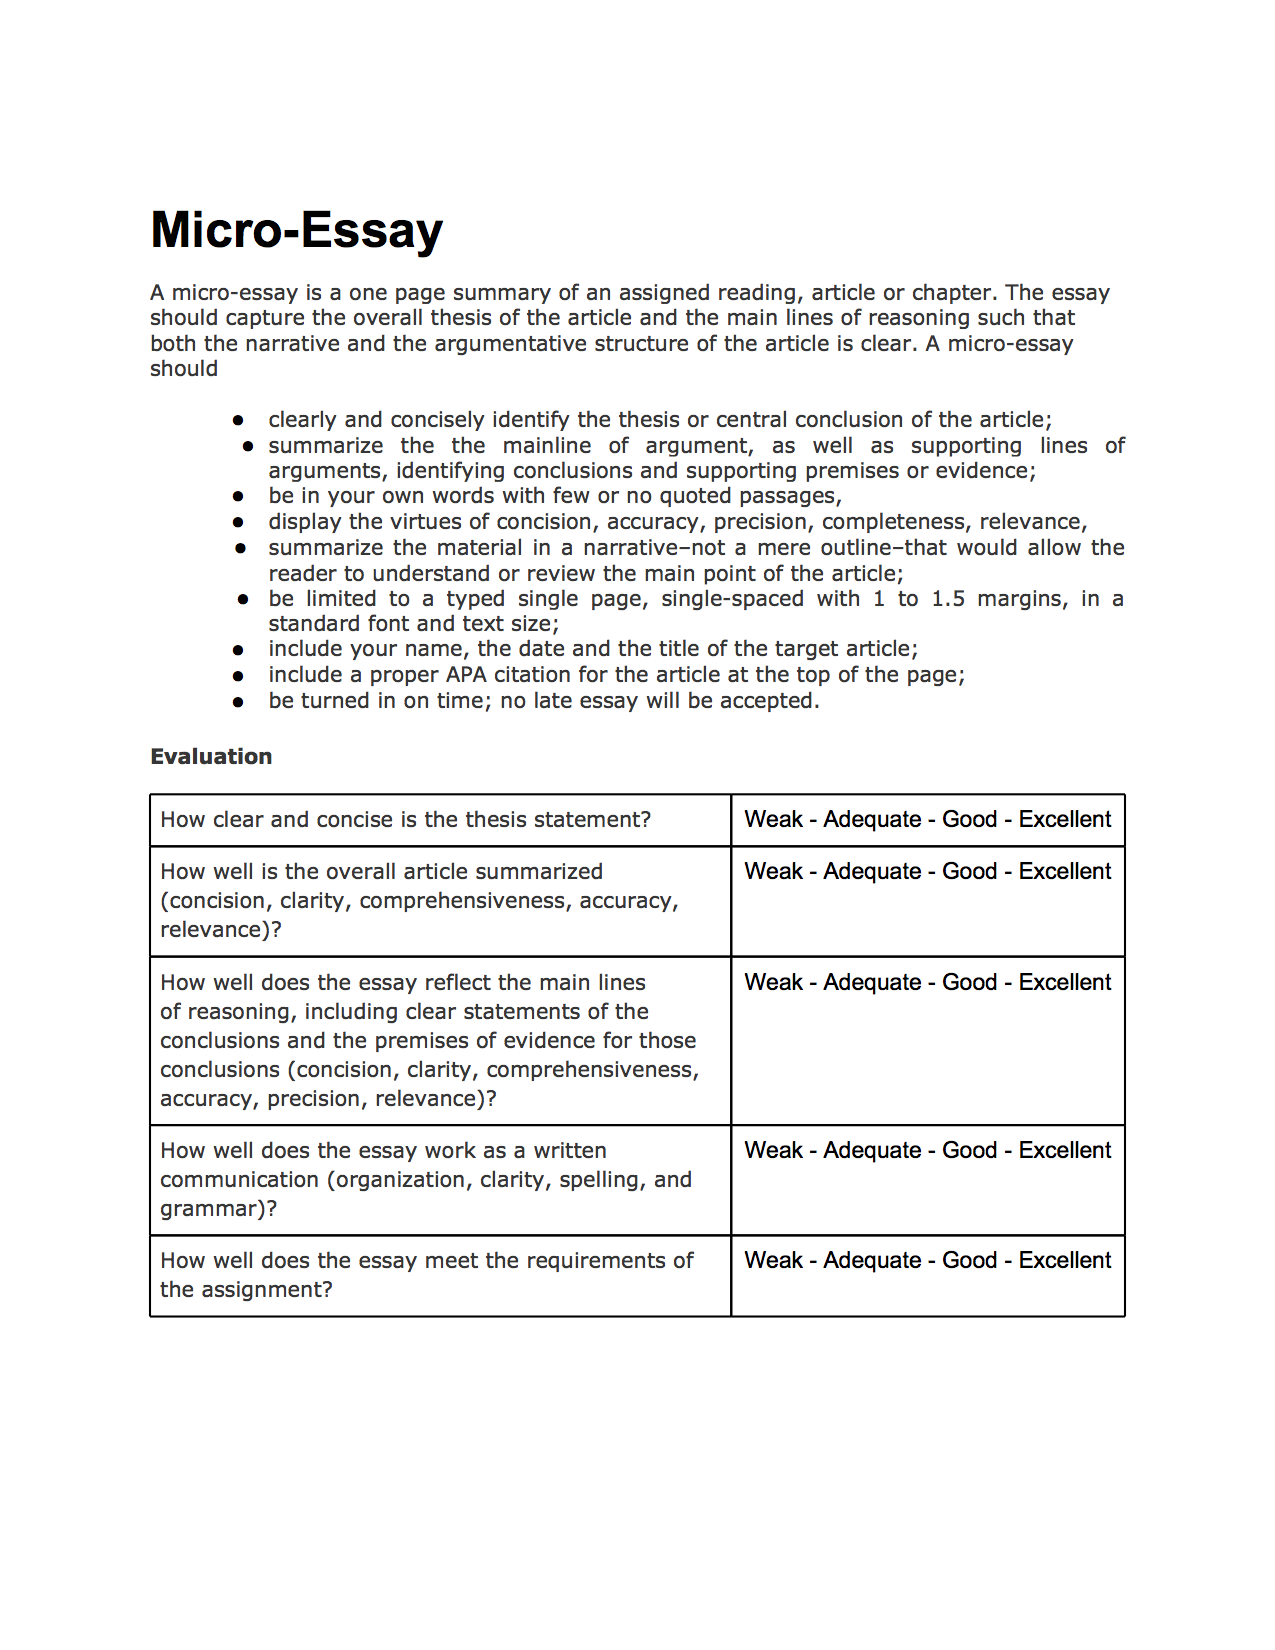 microessays darwin and philosophy microessays a microessay